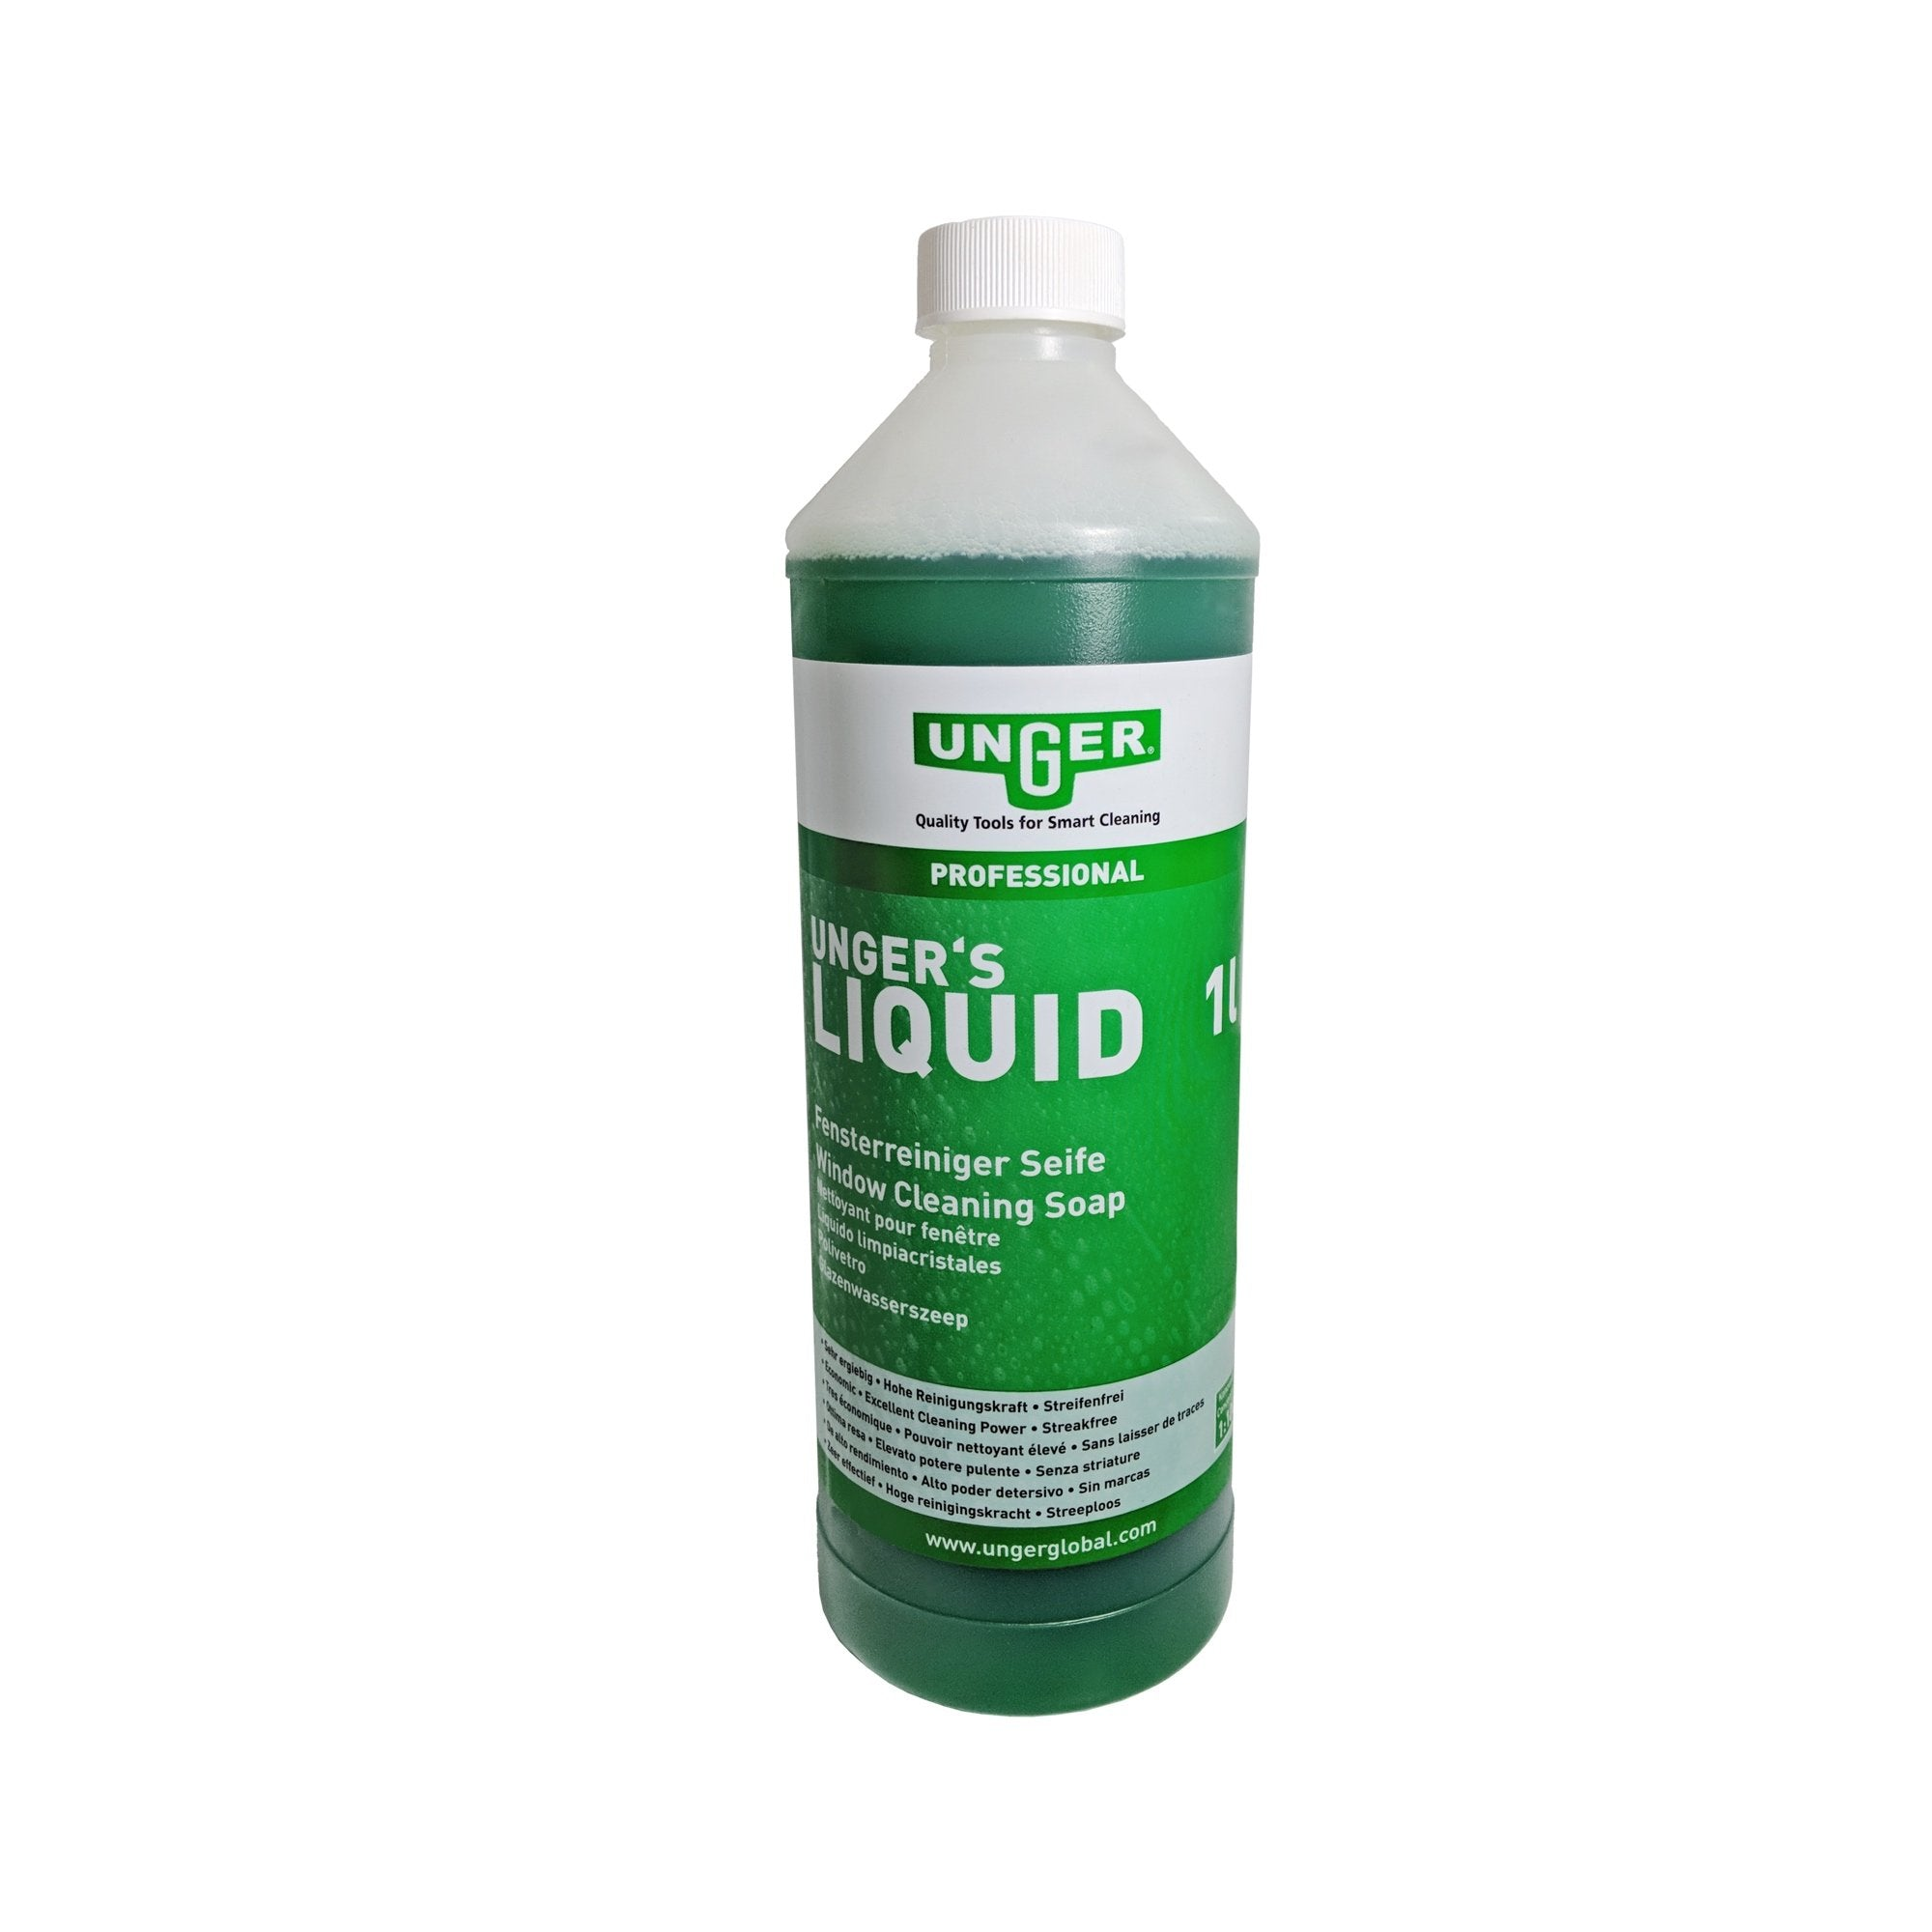 Unger Window Cleaning Liquid 1 Ltr -  Window Cleaning Chemical - Unger